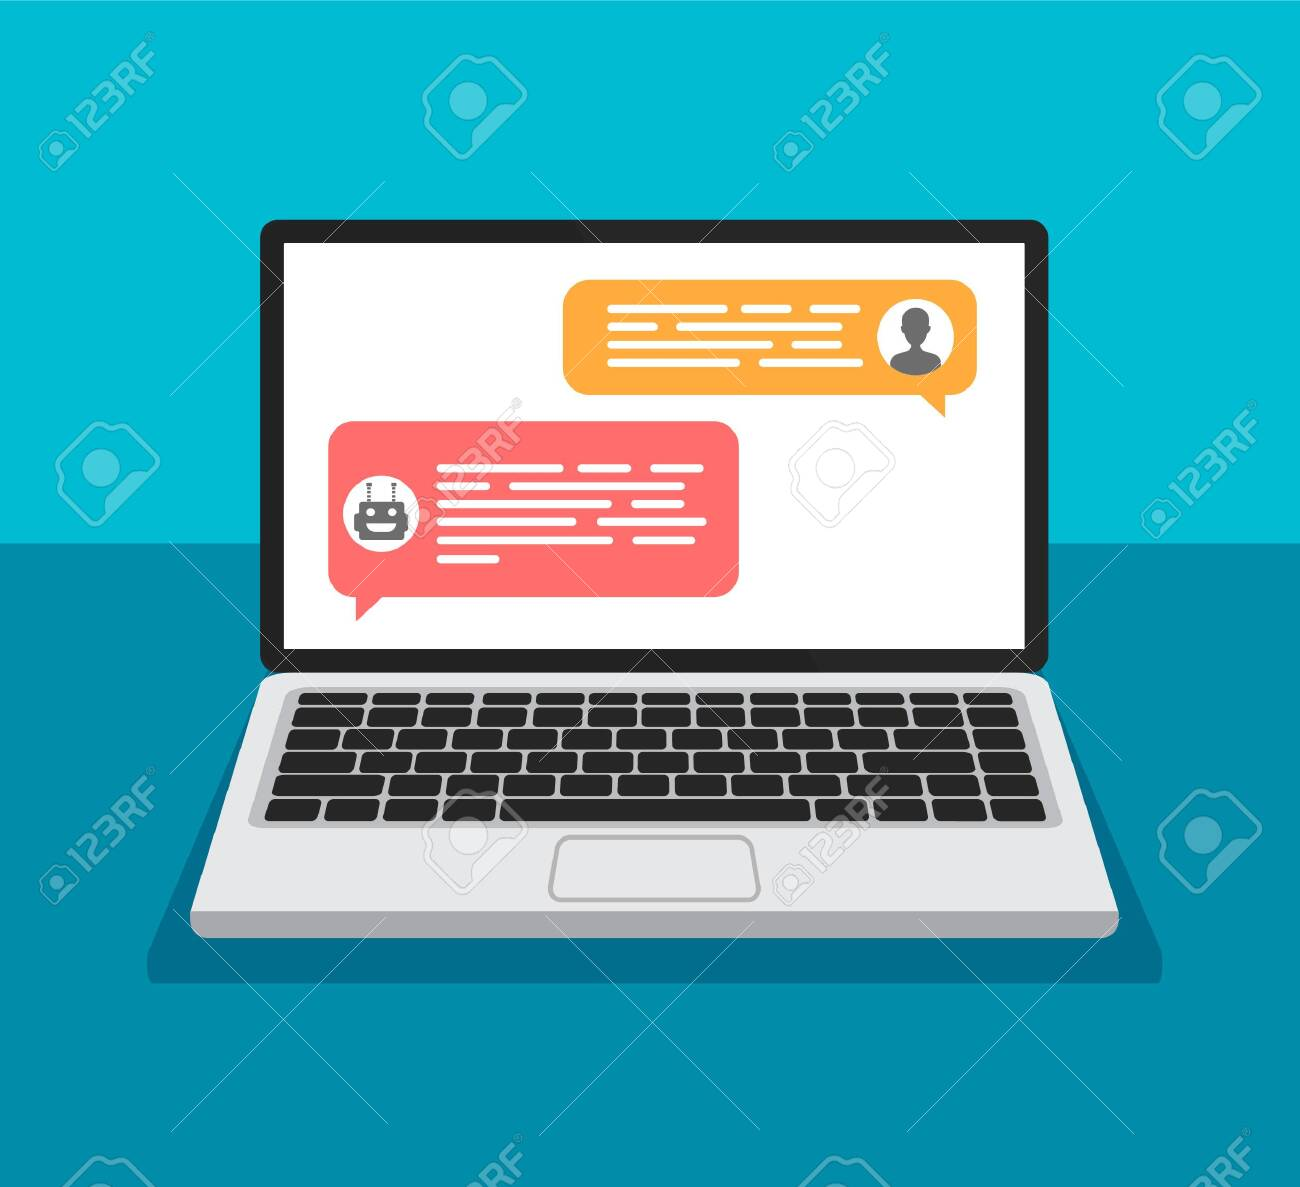 Chat bot concept. Open laptop with dialog boxes. Chatting between robot and human on a computer display. Flat design of messaging bubbles. - 154336105